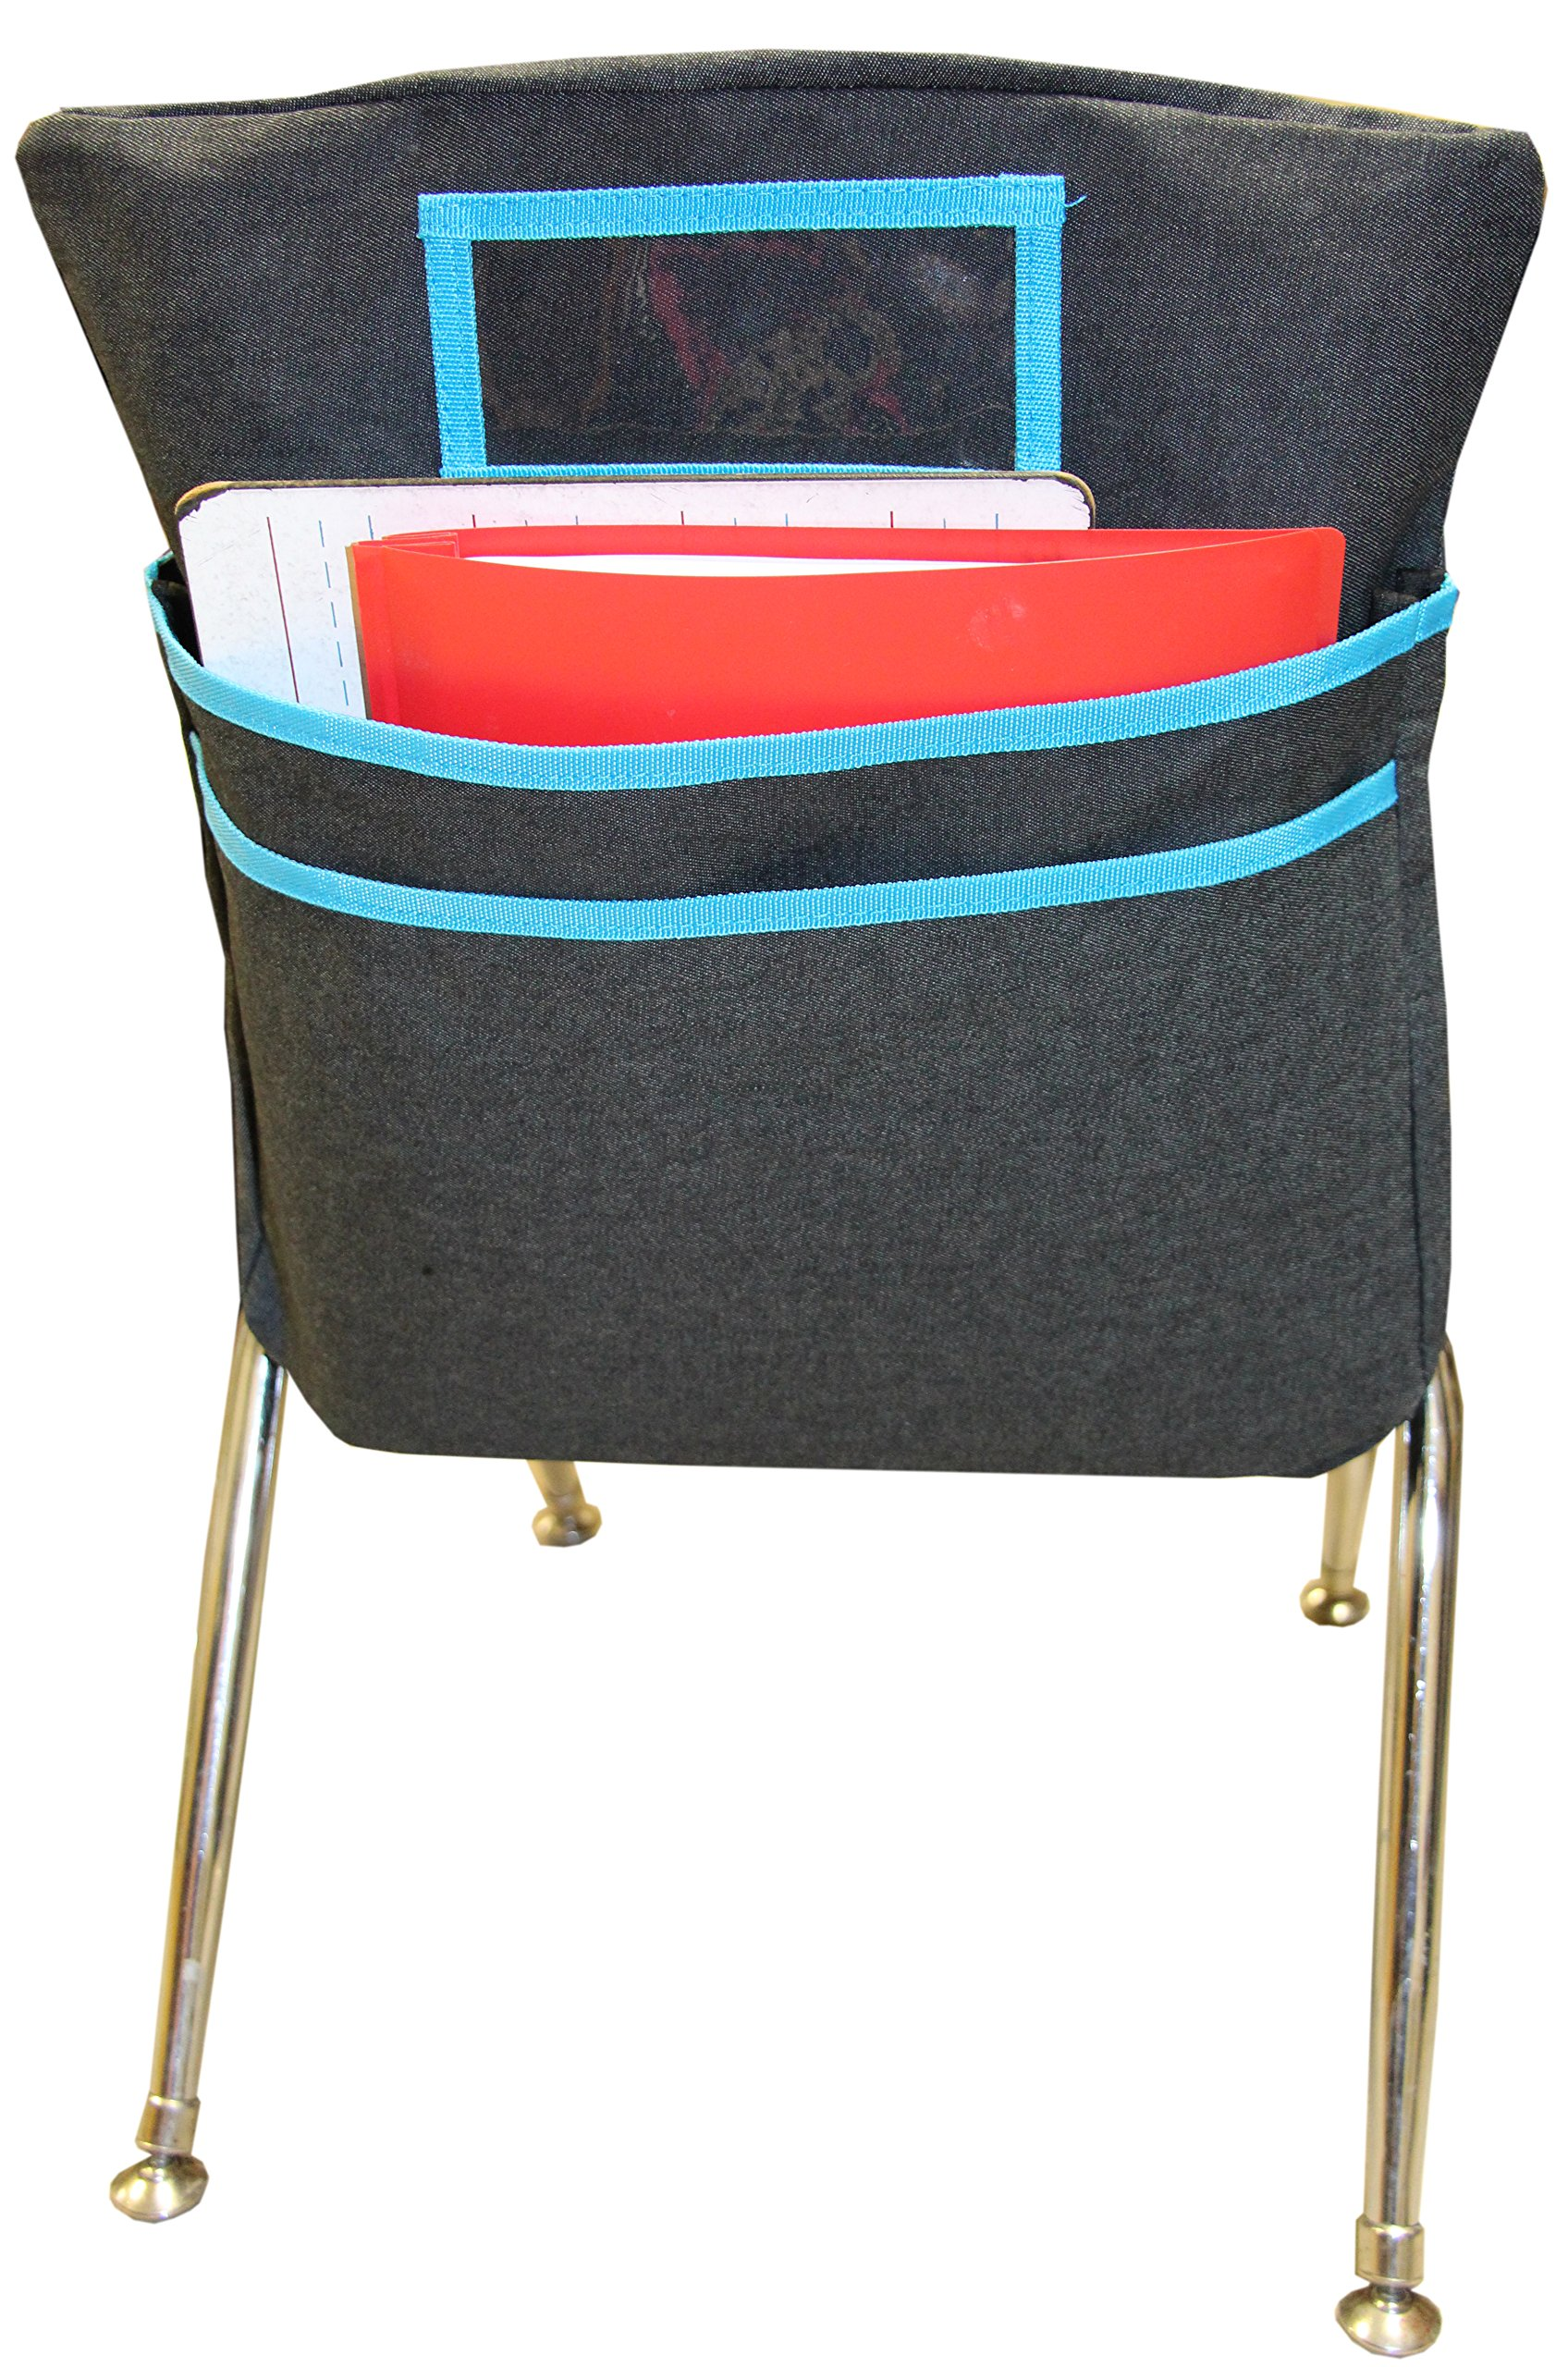 Tiny Octopus Student Chair Pockets For Classrooms - Books and Supplies Chairback Organizer - Foldable and Portable Class Seat Companion (Blue)